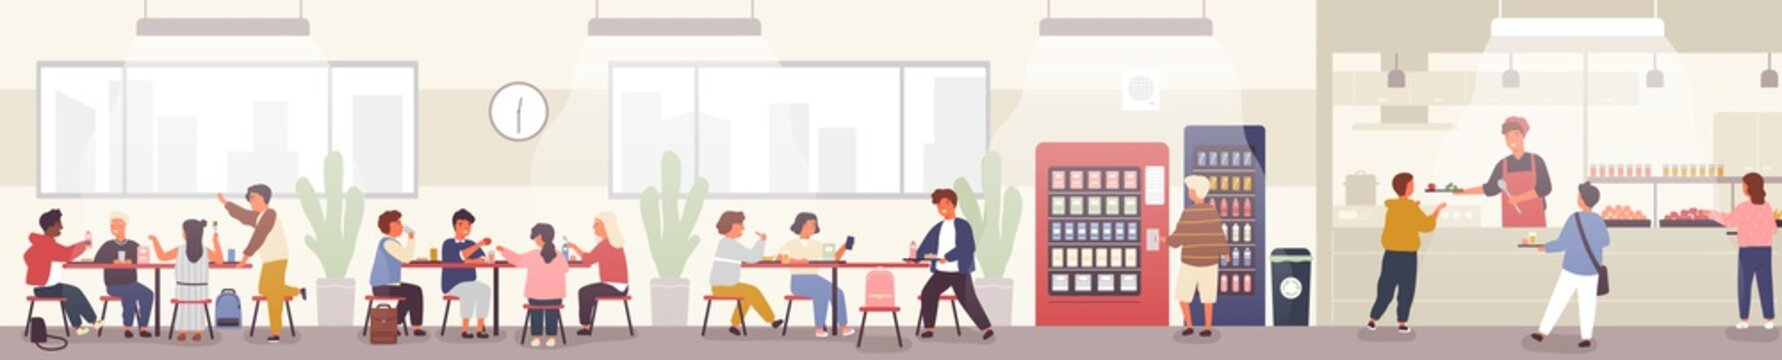 School cafeteria, canteen or dining hall with pupils carrying trays with meals, sitting at tables and eating lunch, buying snacks at vending machine. Vector illustration in flat cartoon style.